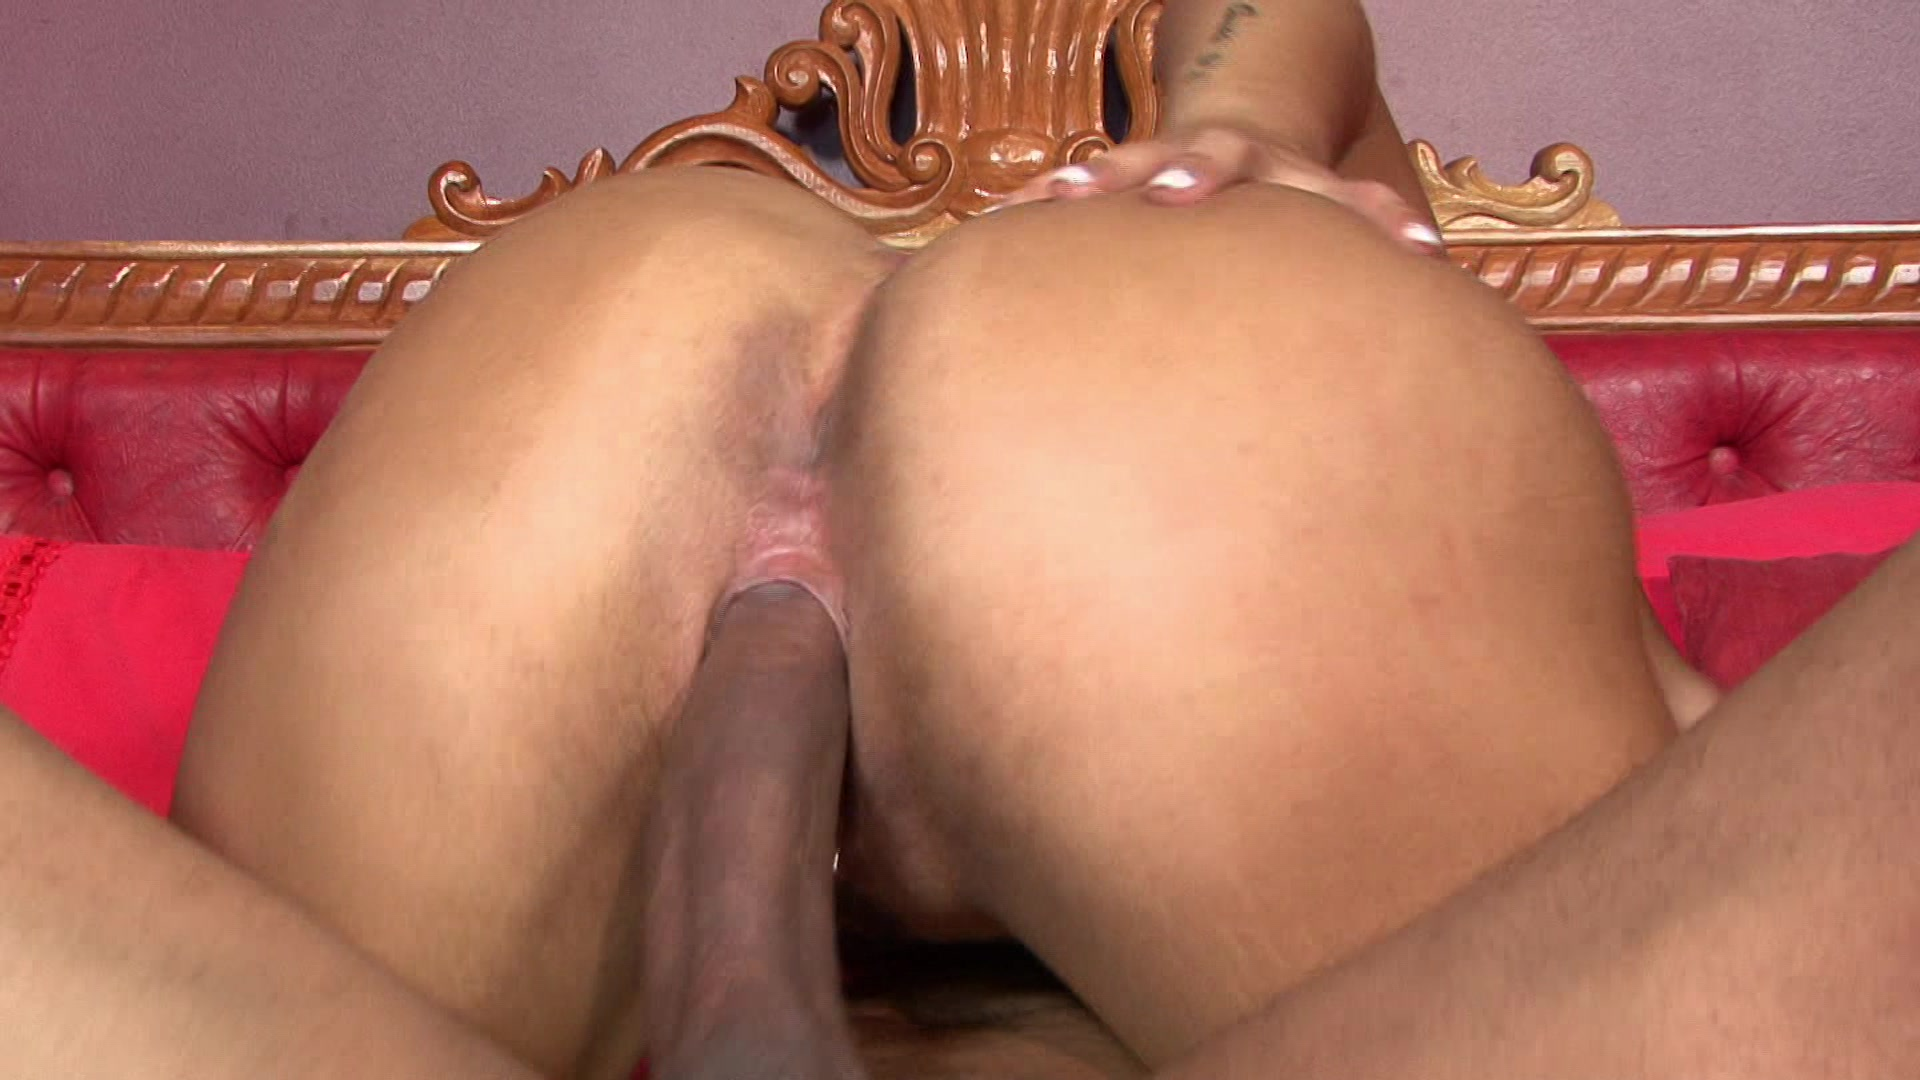 ebony mother porn videos